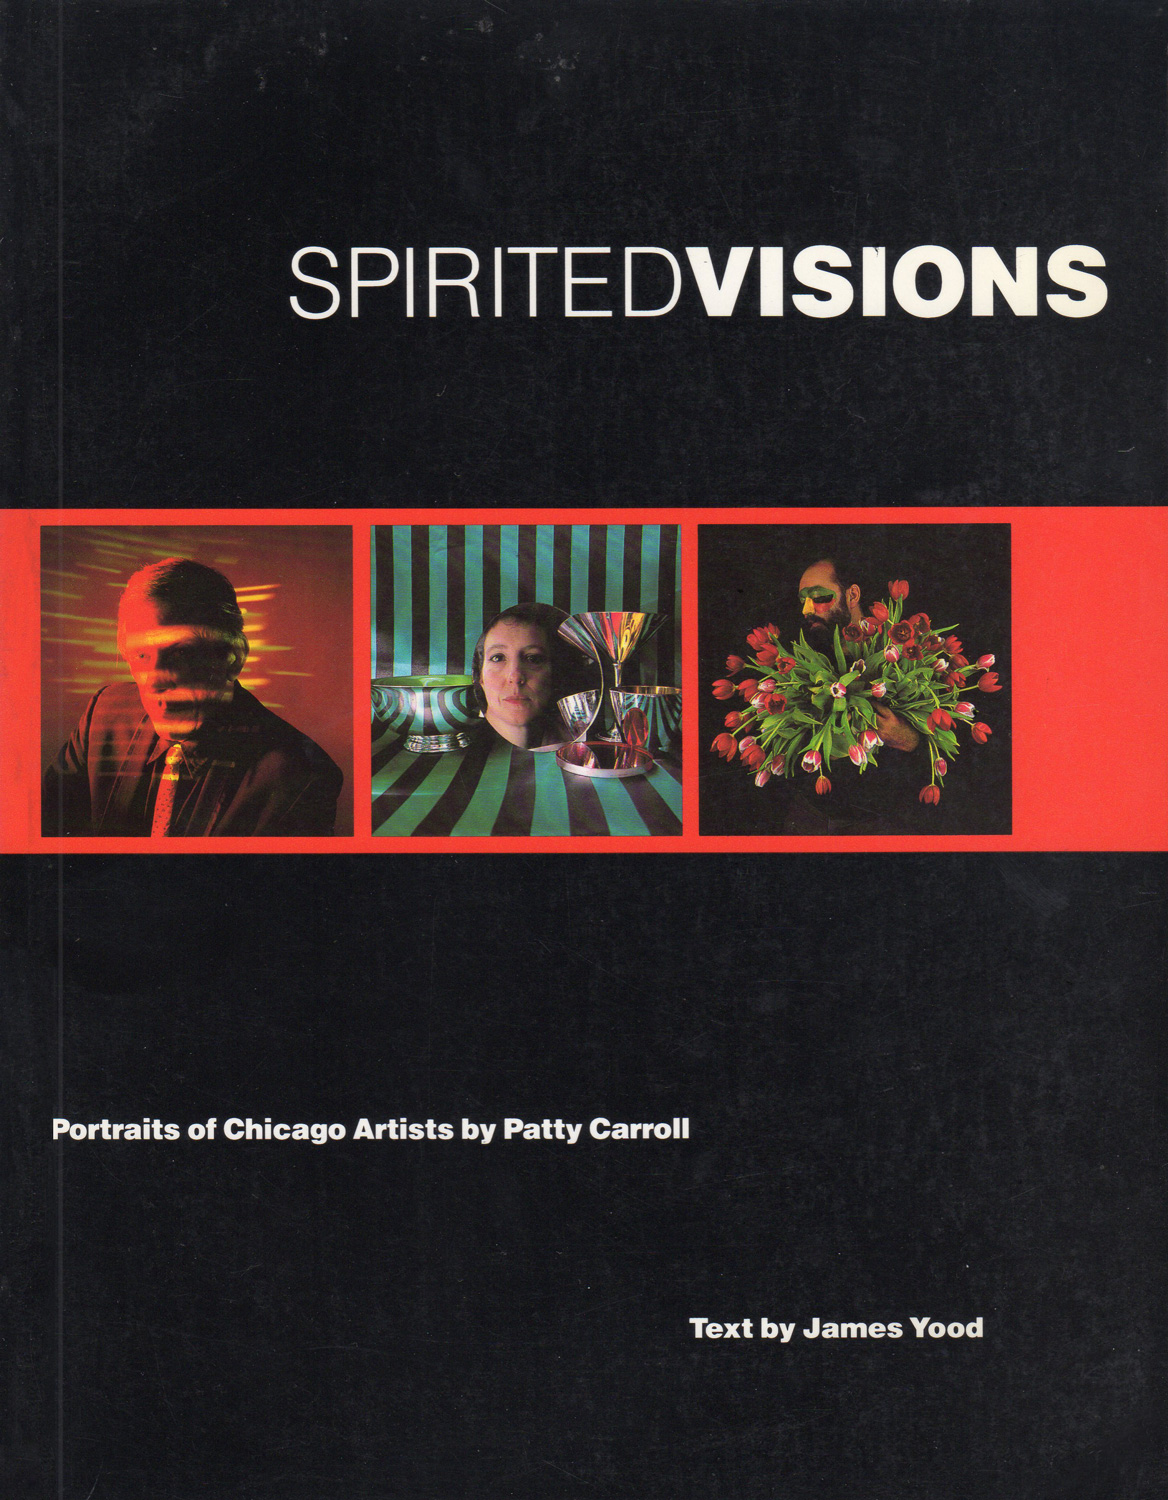 Spirited Visions : Portraits of Chicago Artists by Patty Carroll , University of Illinois Press, Urbana and Chicago, IL, 1991.